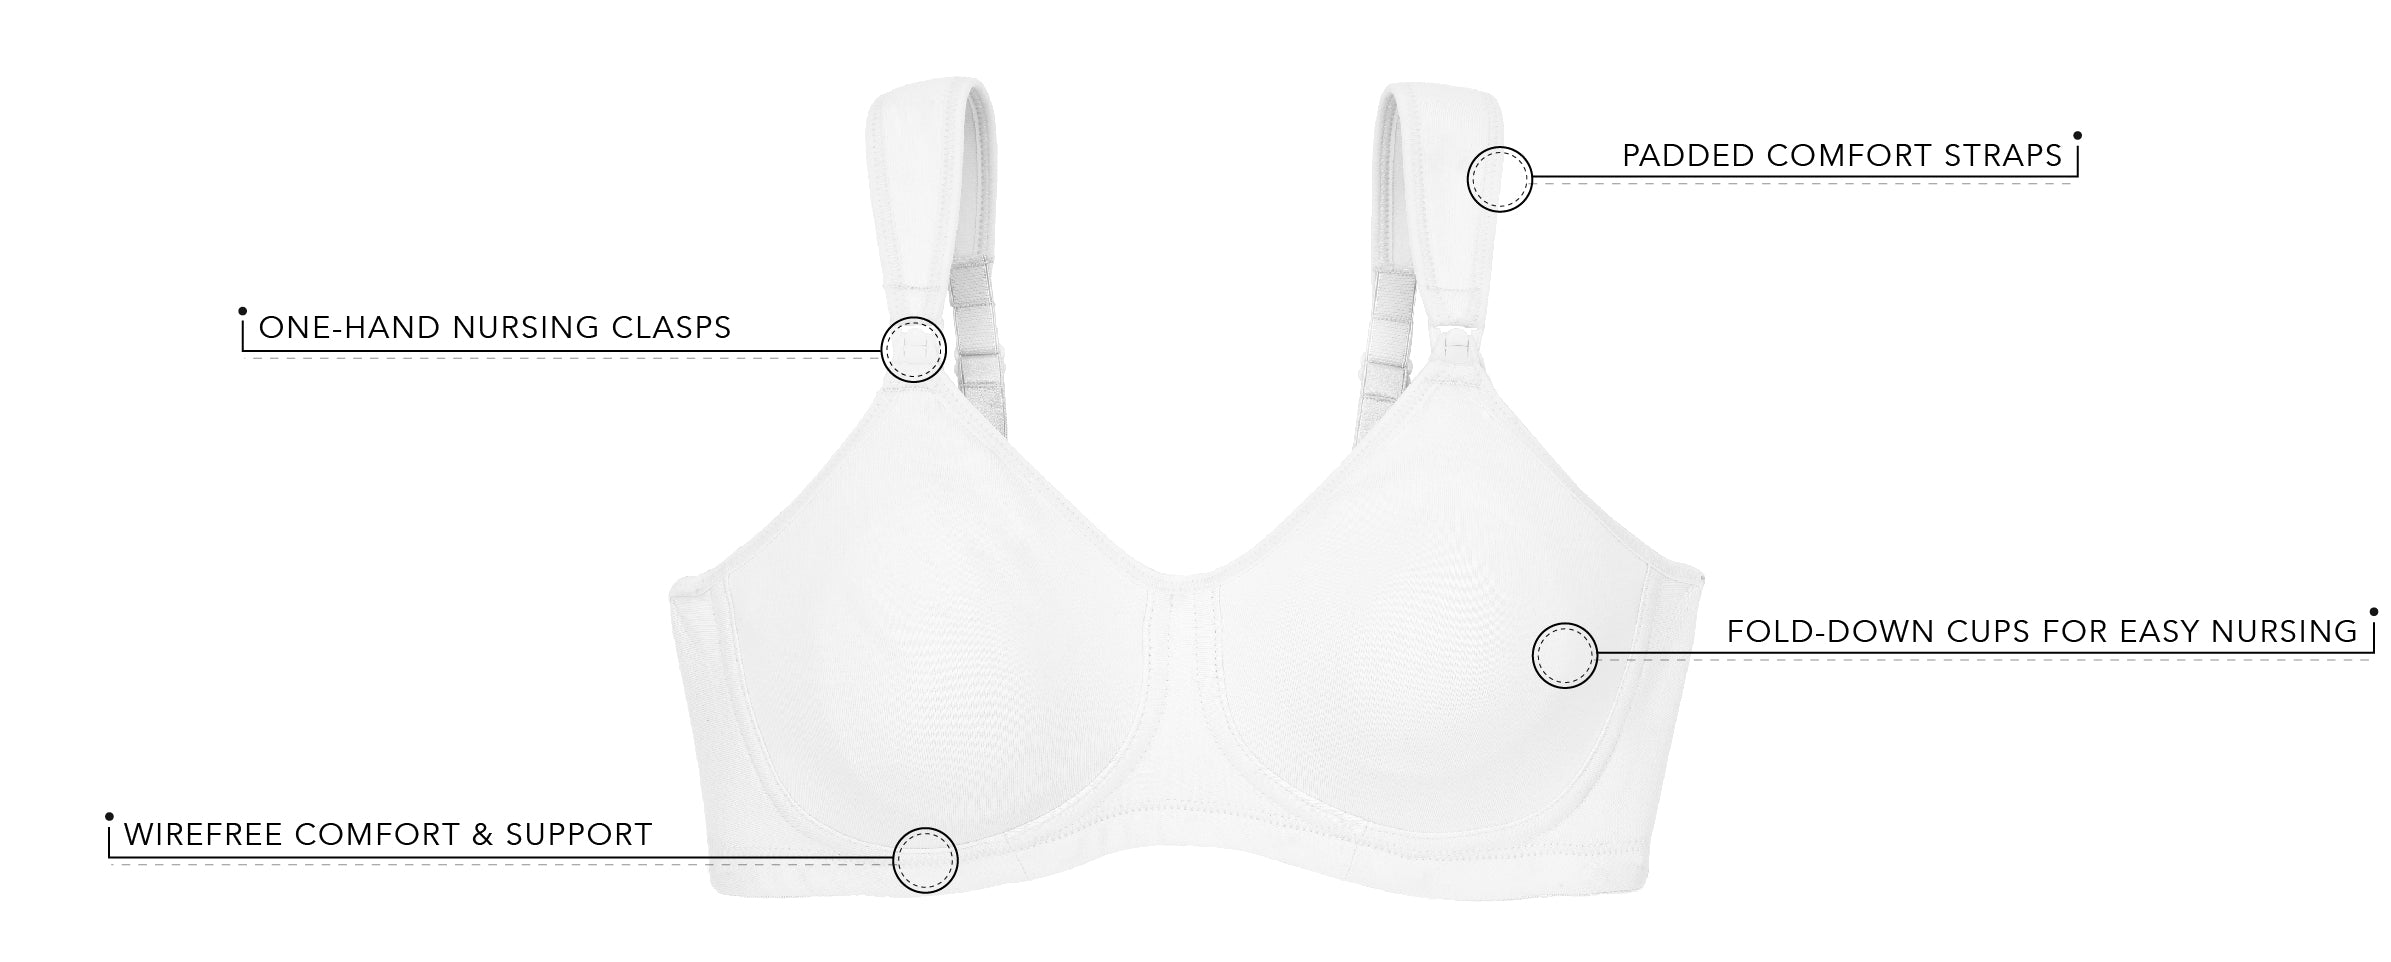 The Vivien - Sport Wirefree Nursing Bra | 4388 - Product Detail View